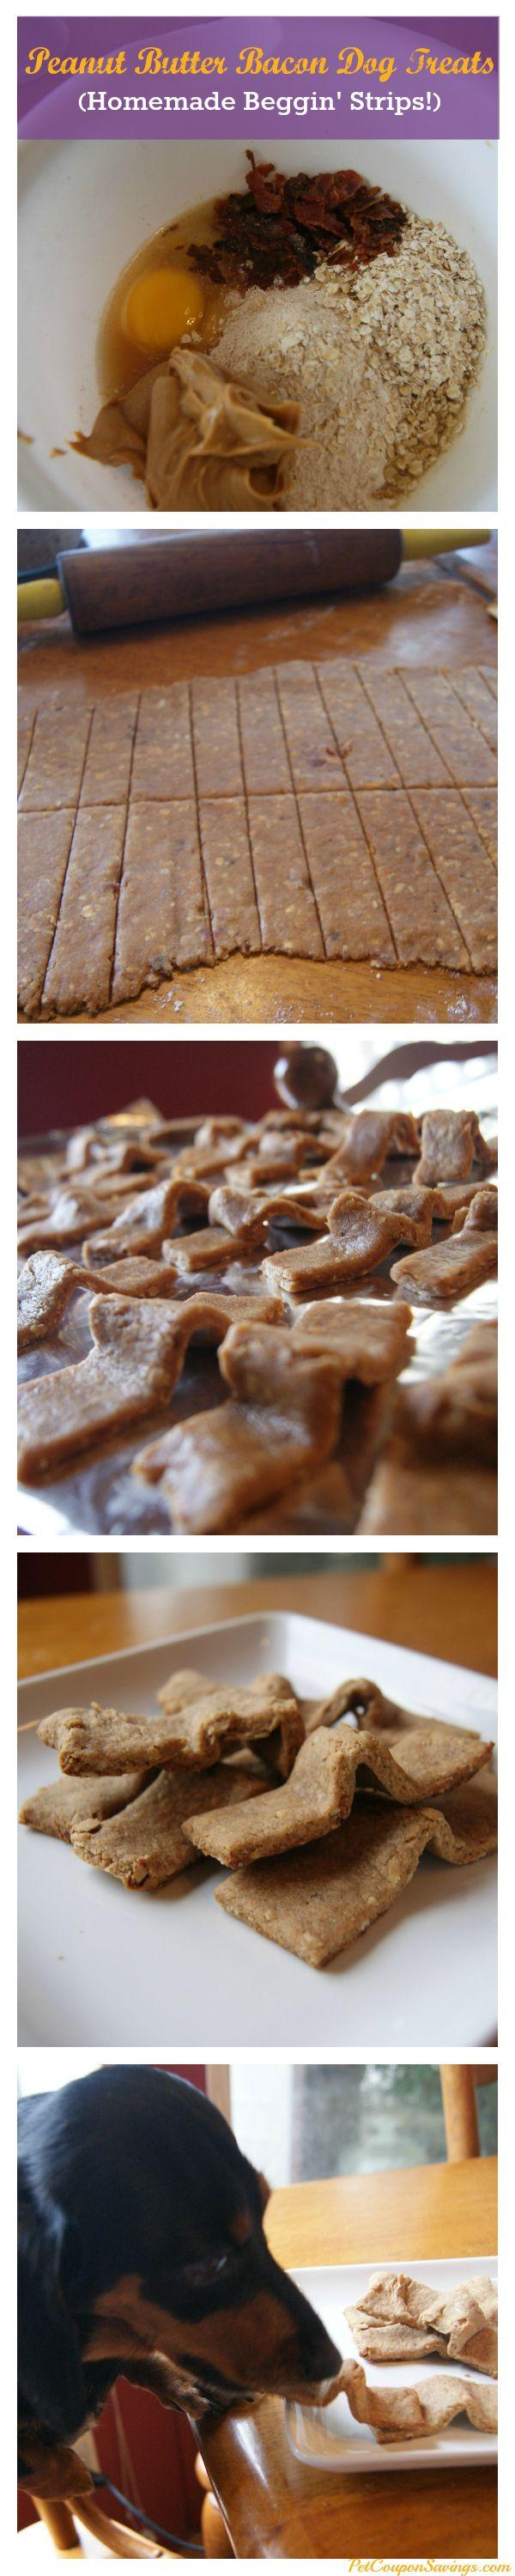 Wedding - Homemade Dog Treats